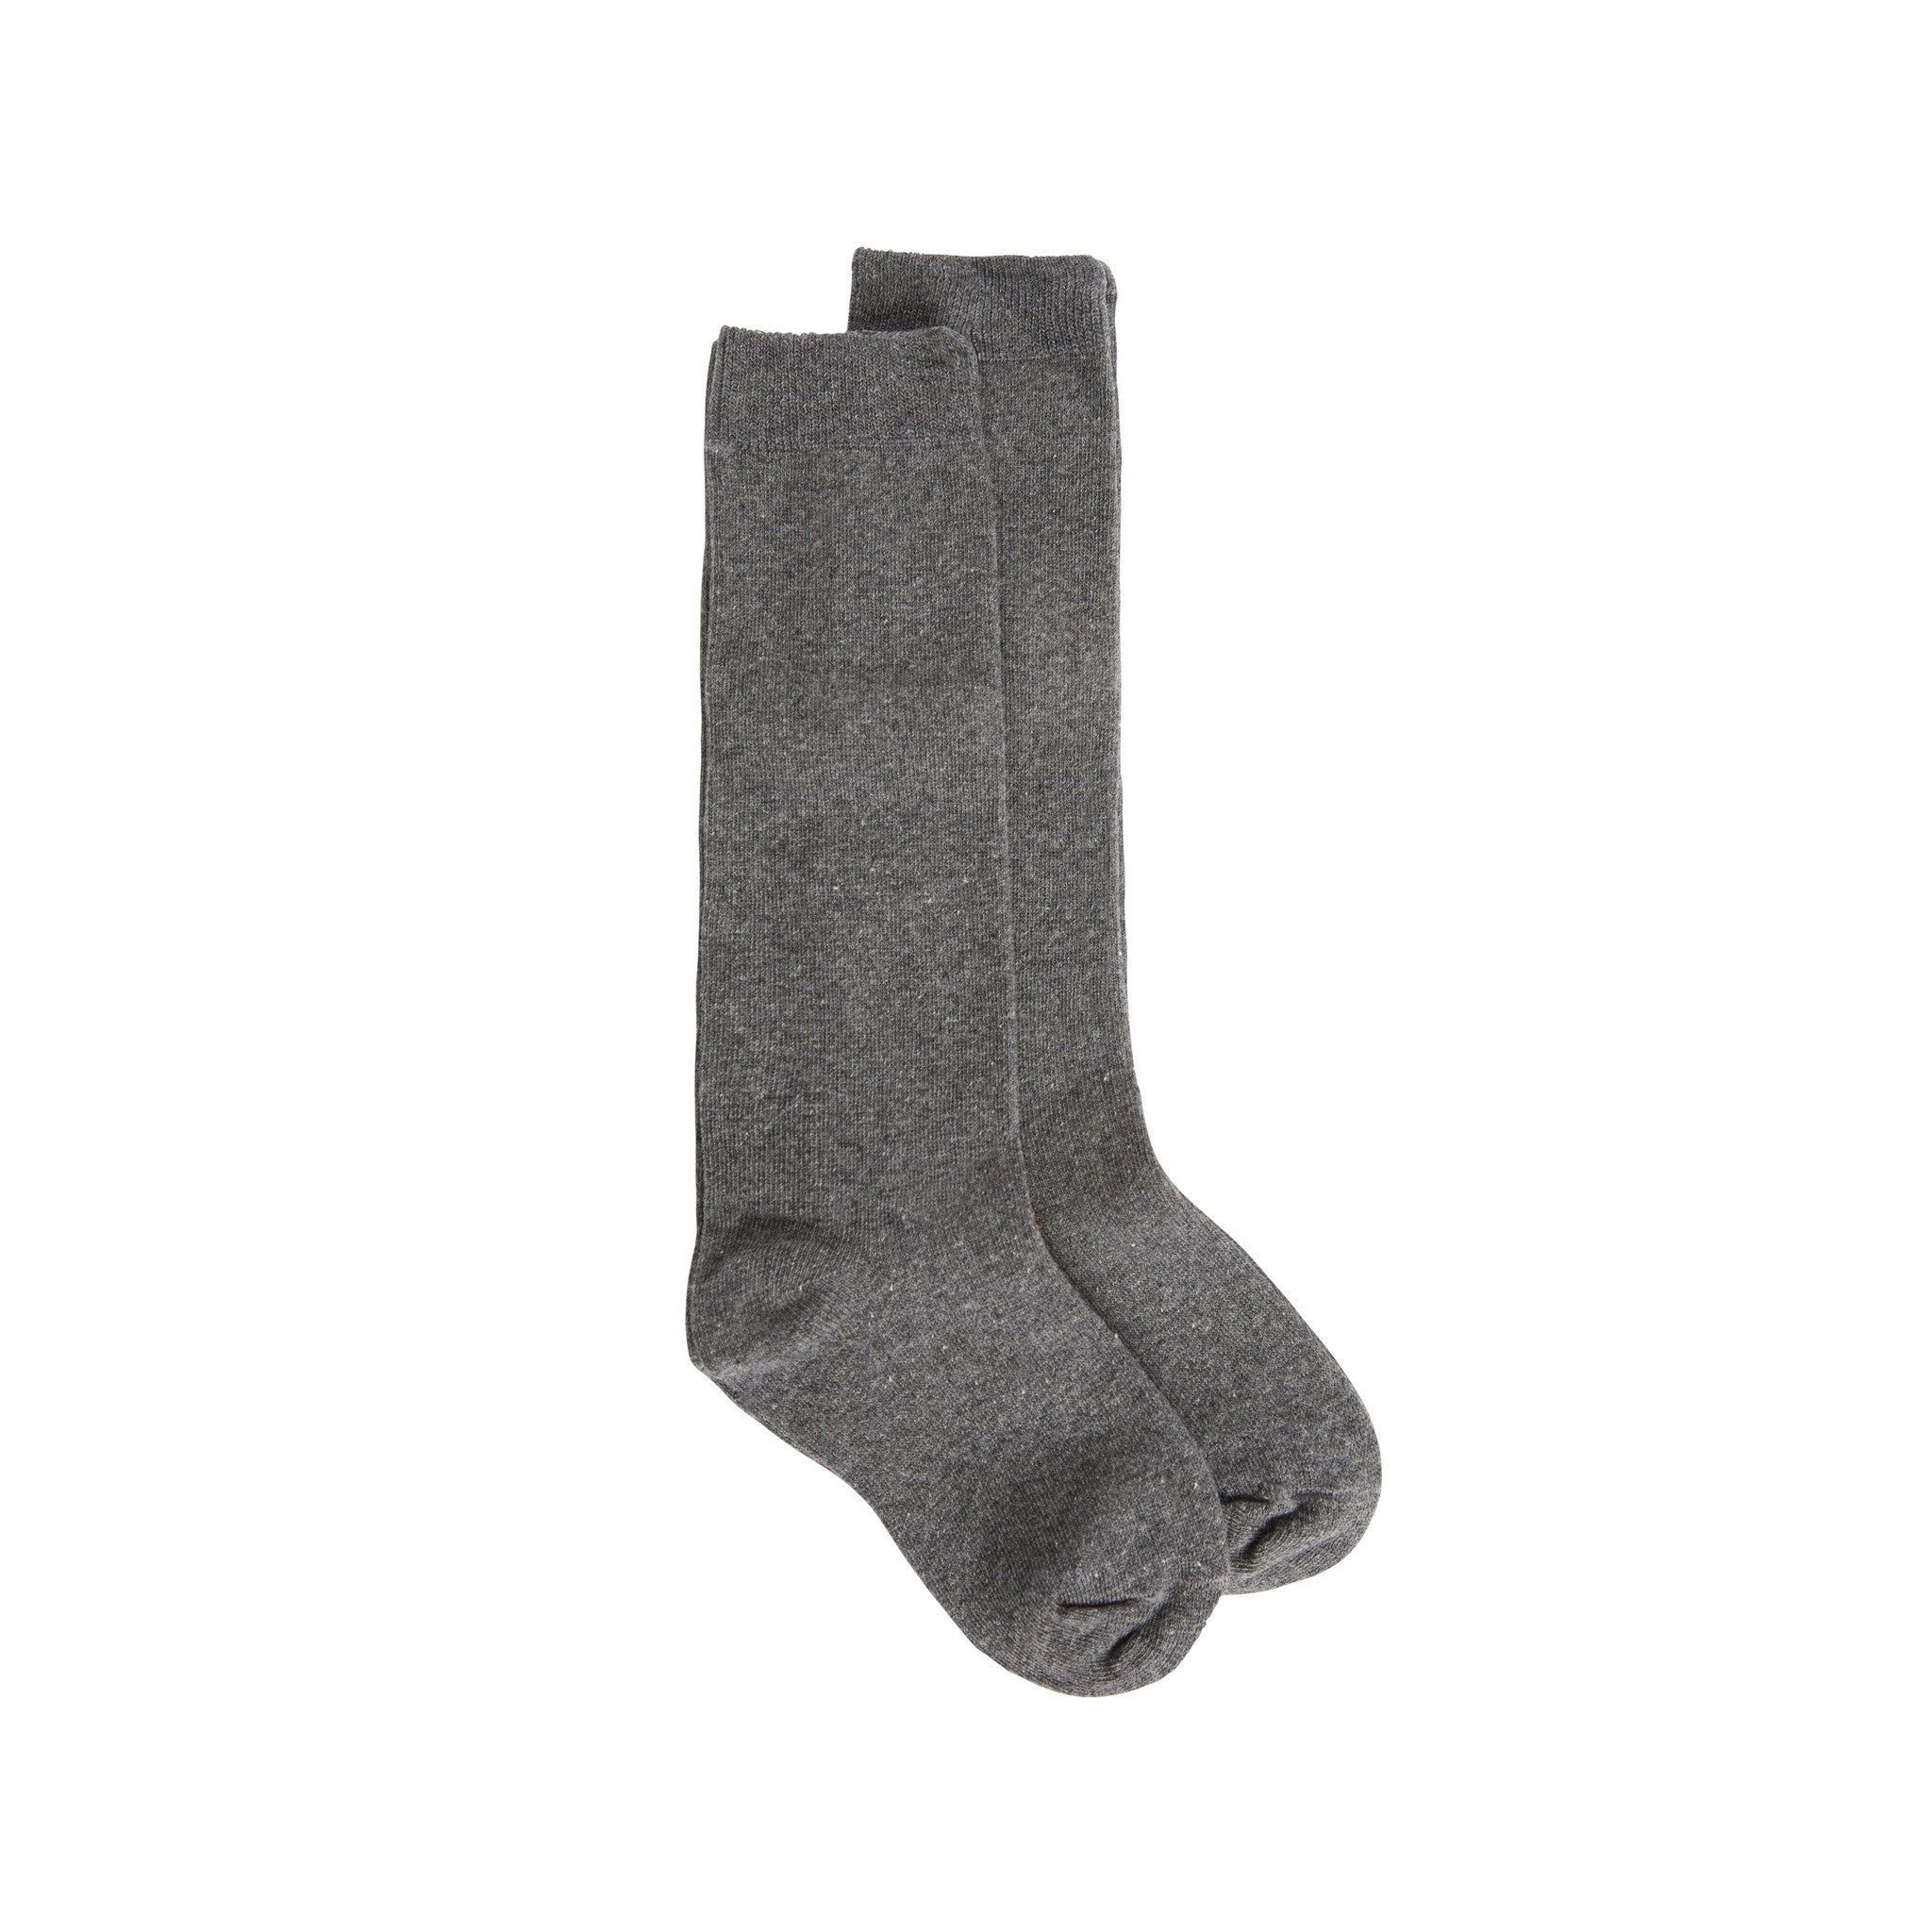 Pre-Prep Grey Long Socks